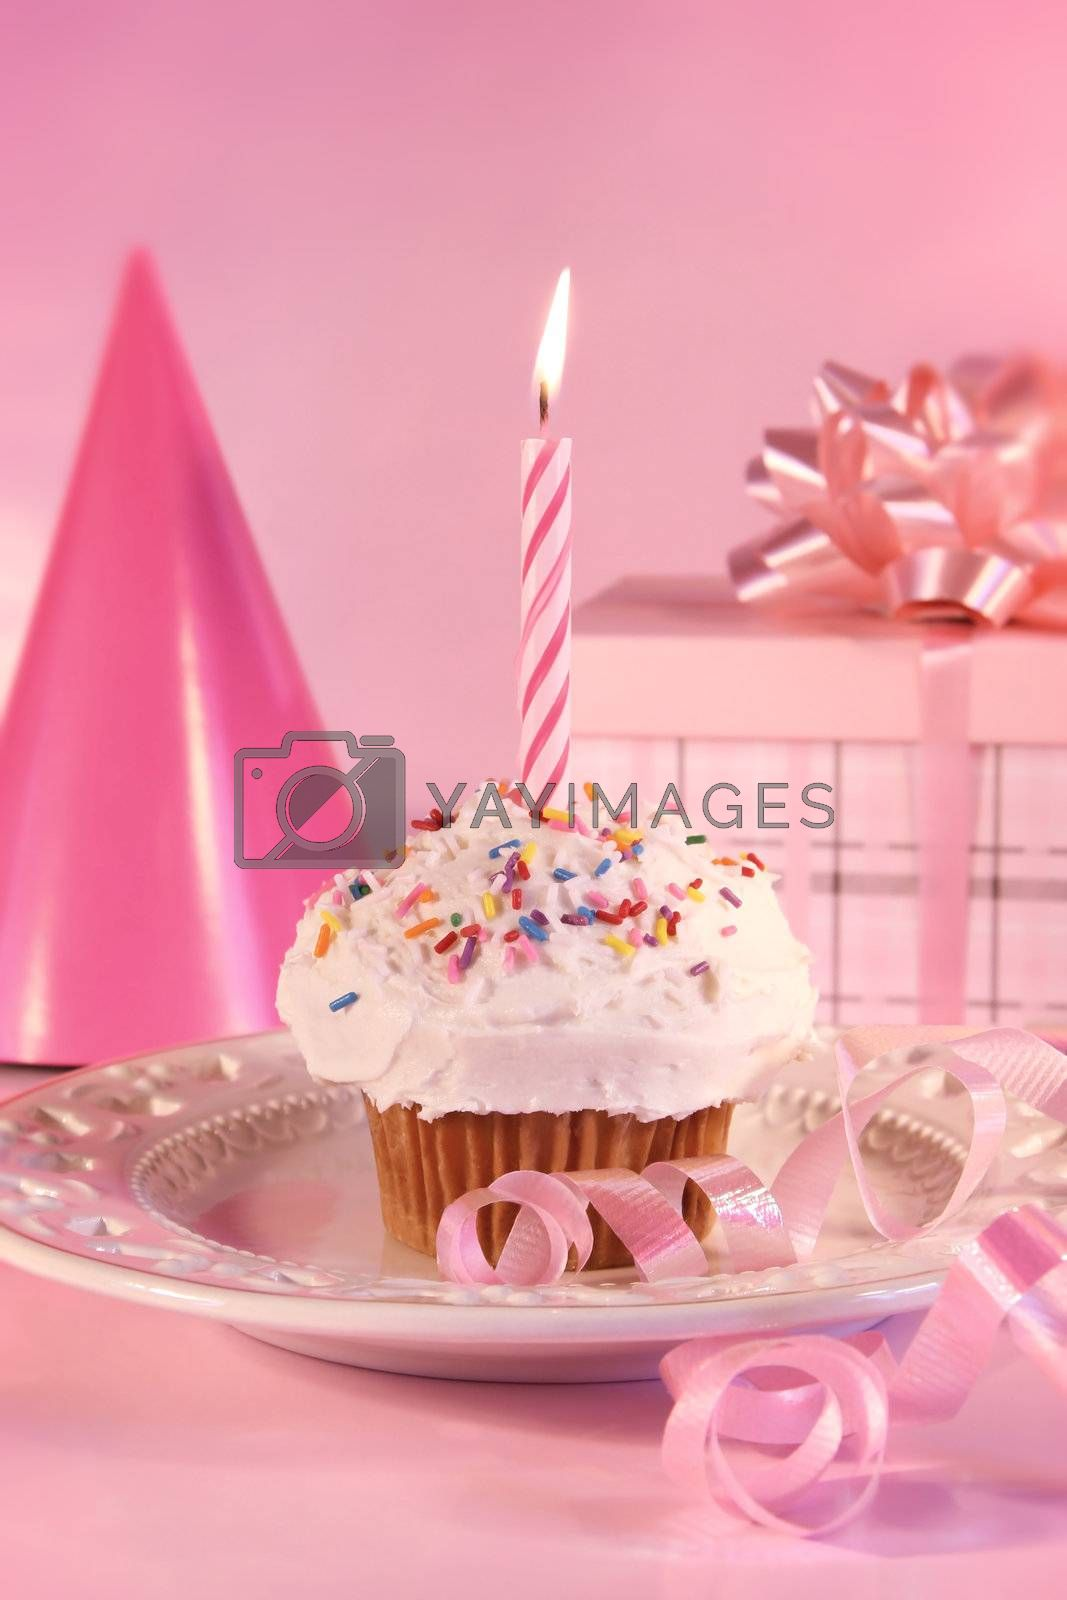 One little cupcake with candle